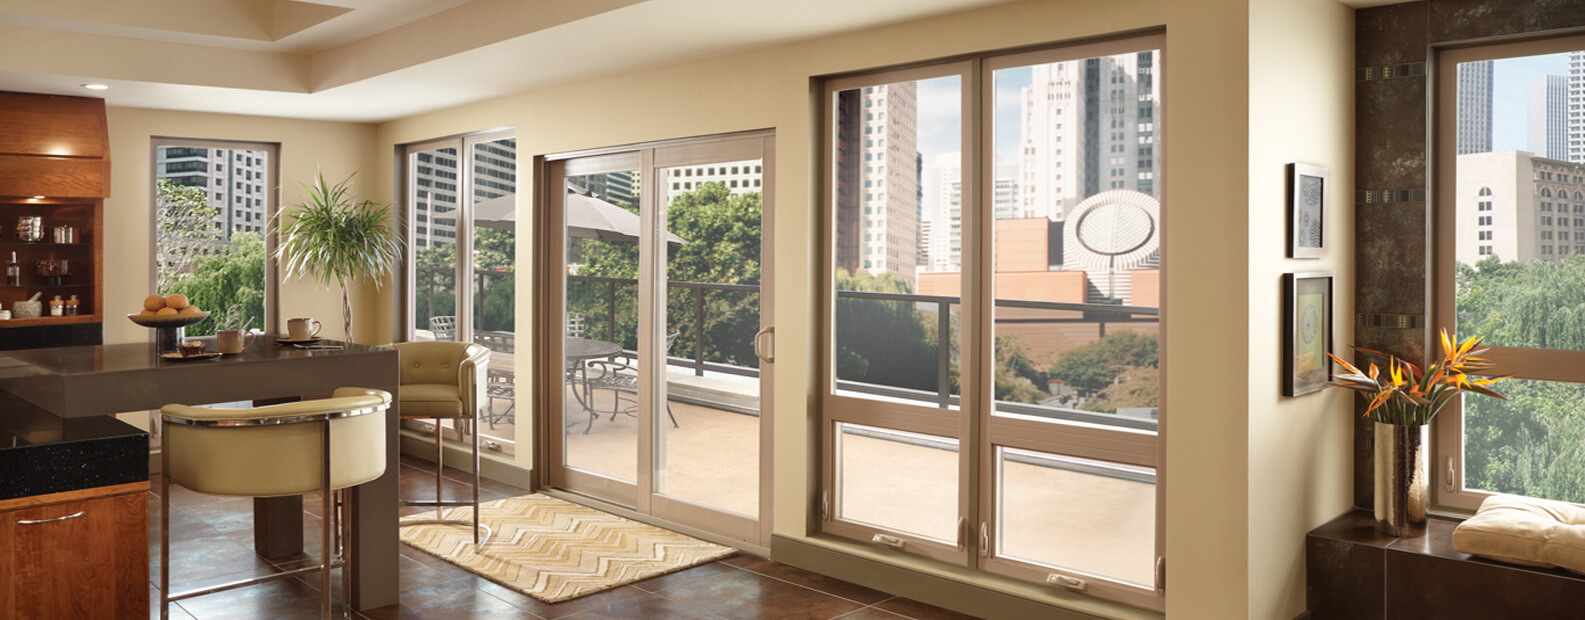 veranda view with sliding doors sliding windows